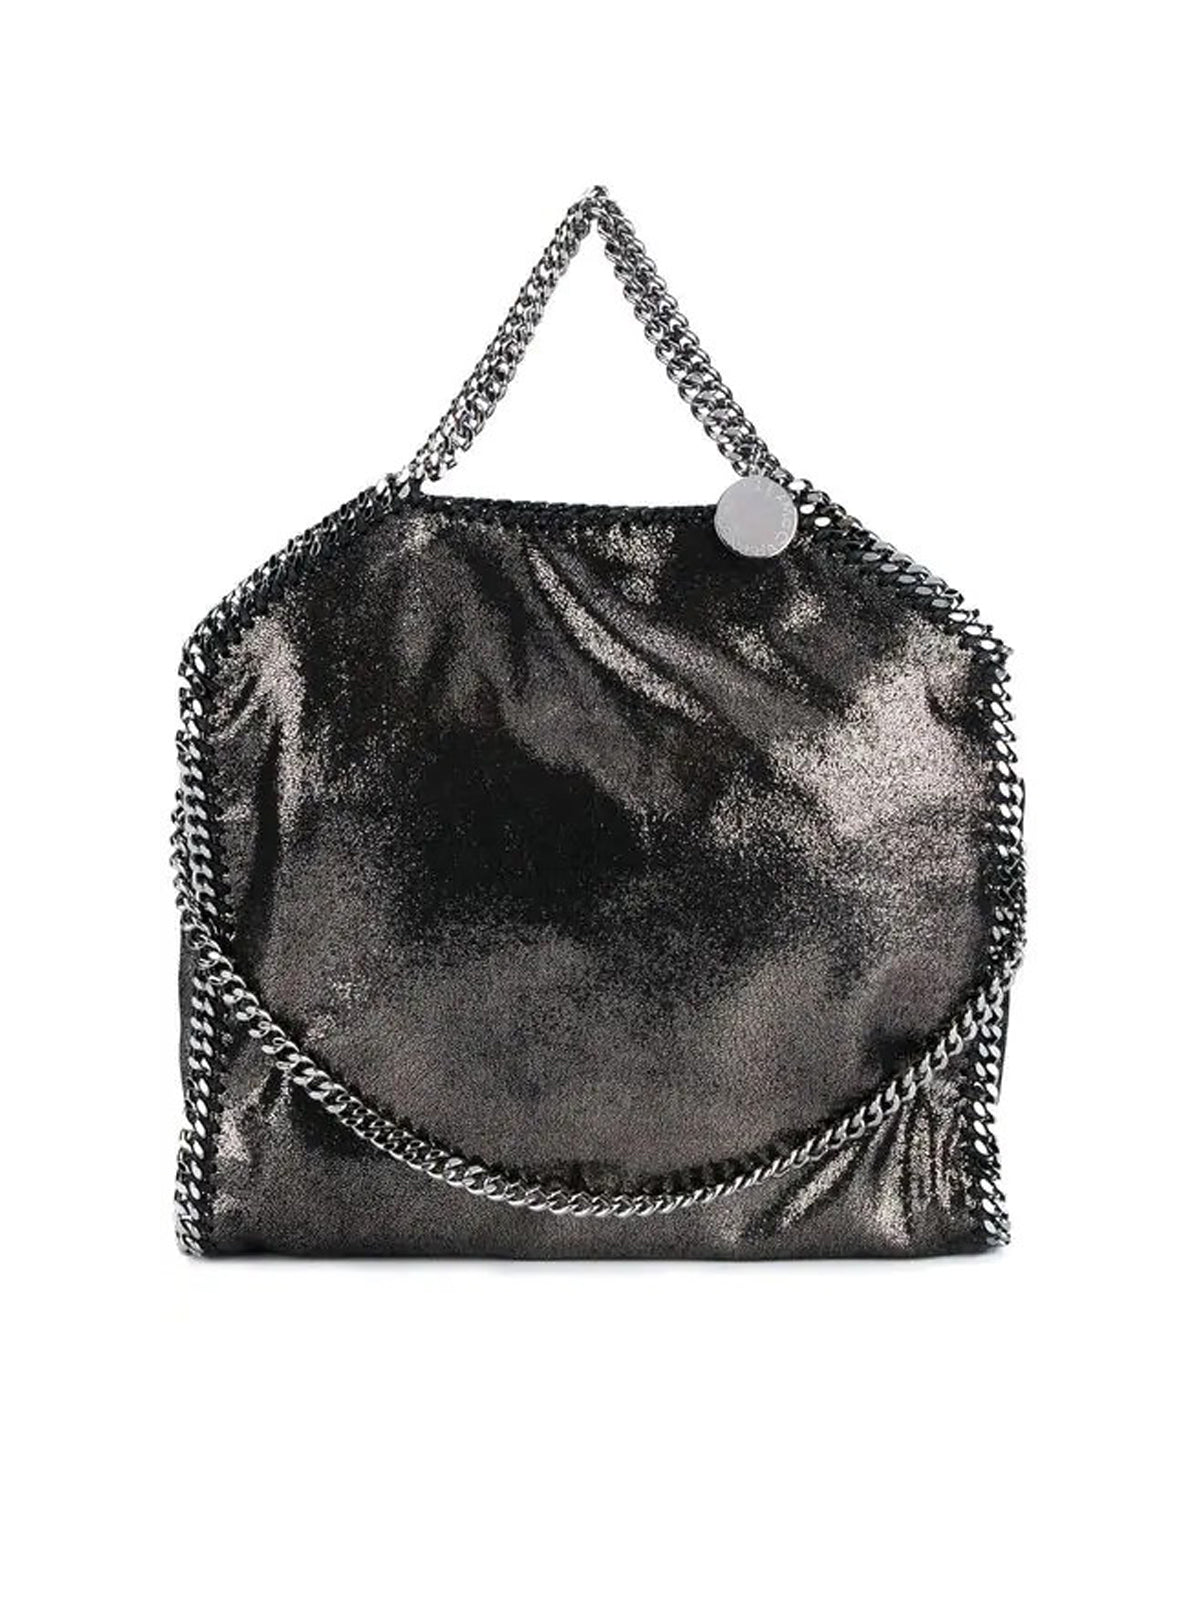 FALABELLA BAG IN SUEDE WITH 3 CHAINS